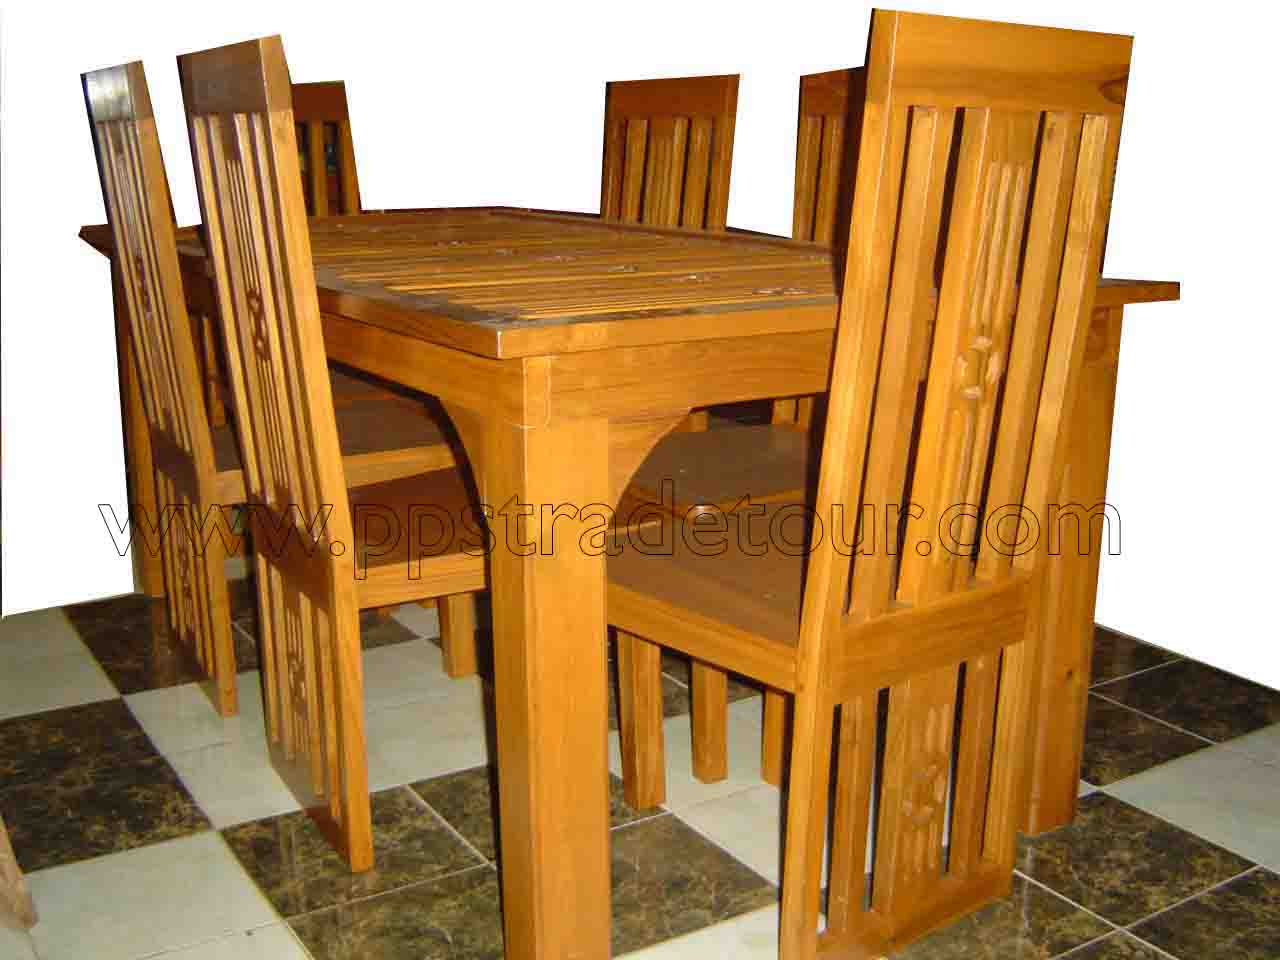 PPS-Table-set161-1